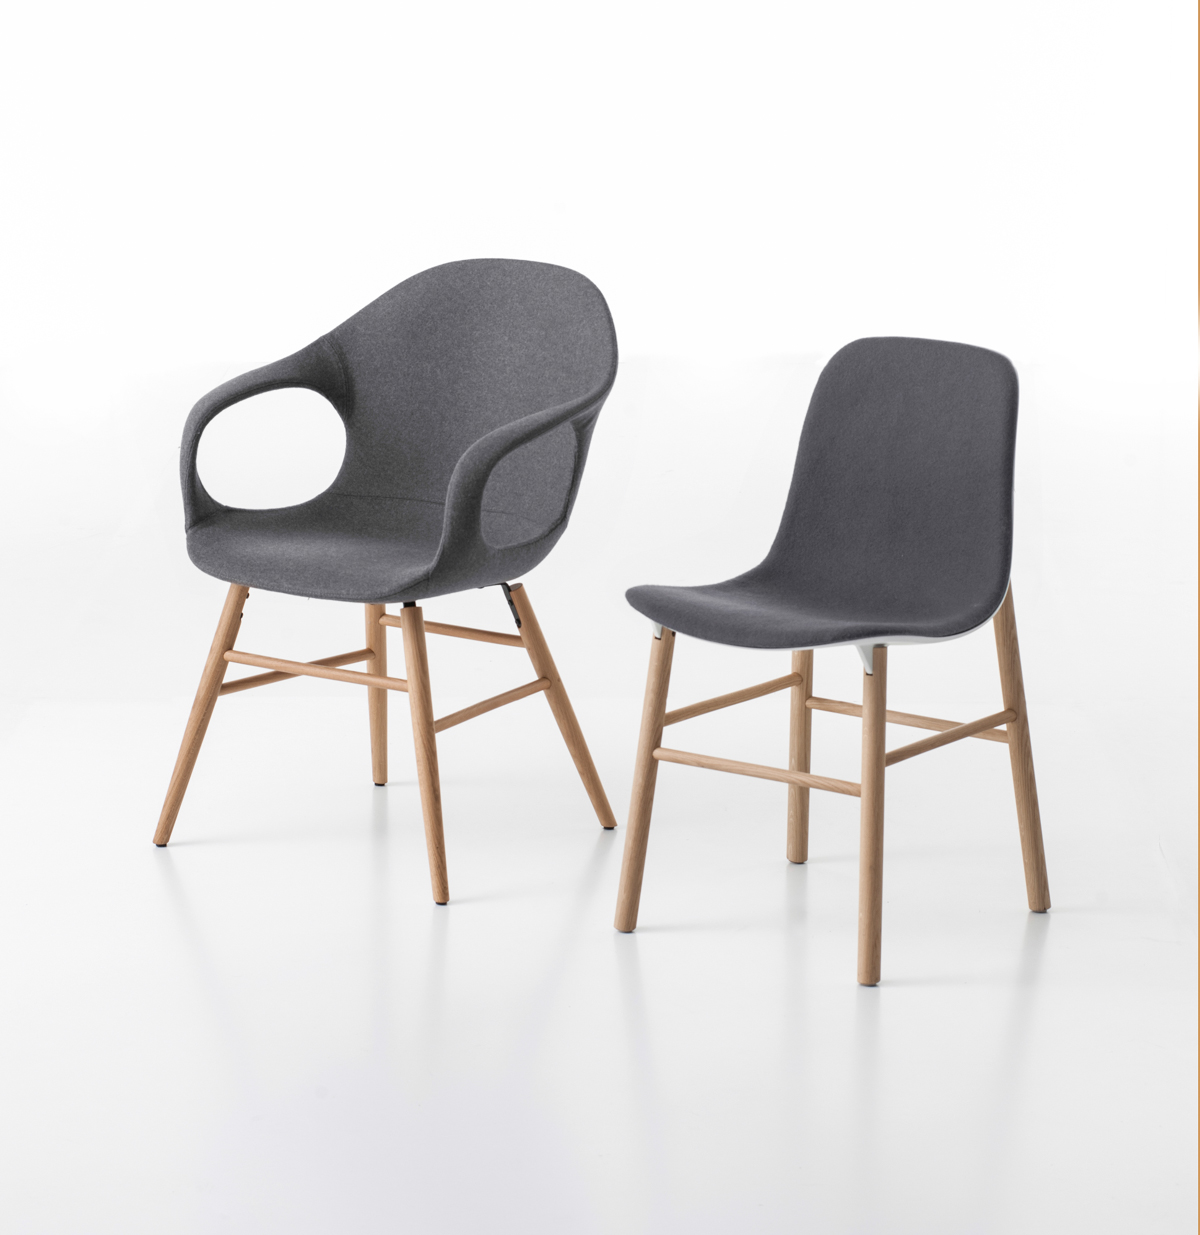 Two New Chairs from Kristalia